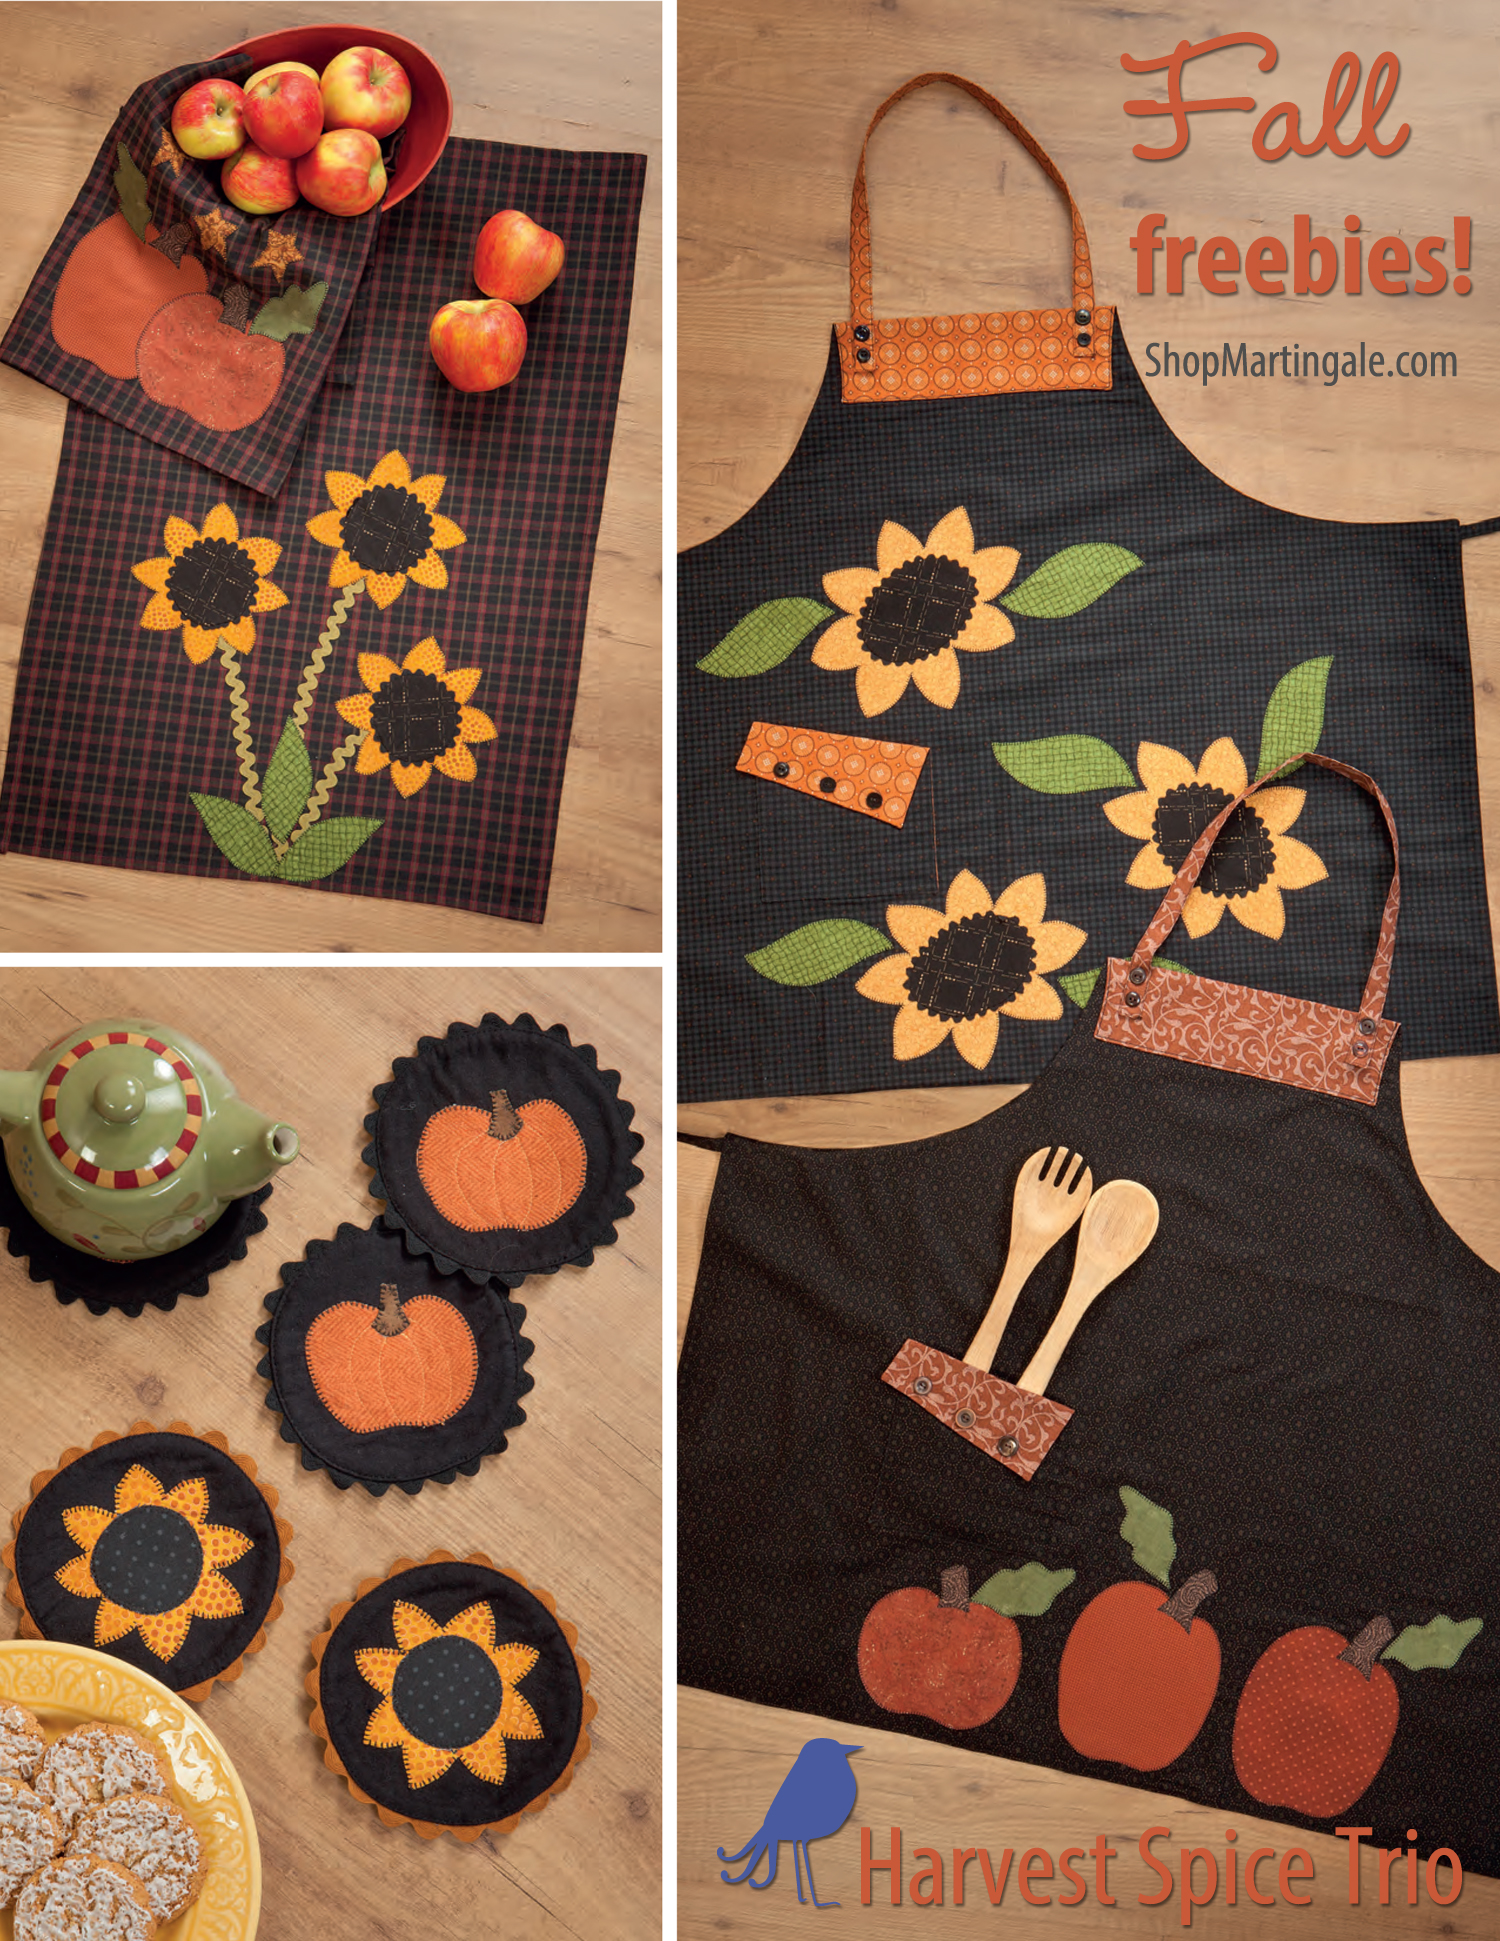 Free patterns for fall: autumn inspired kitchen set